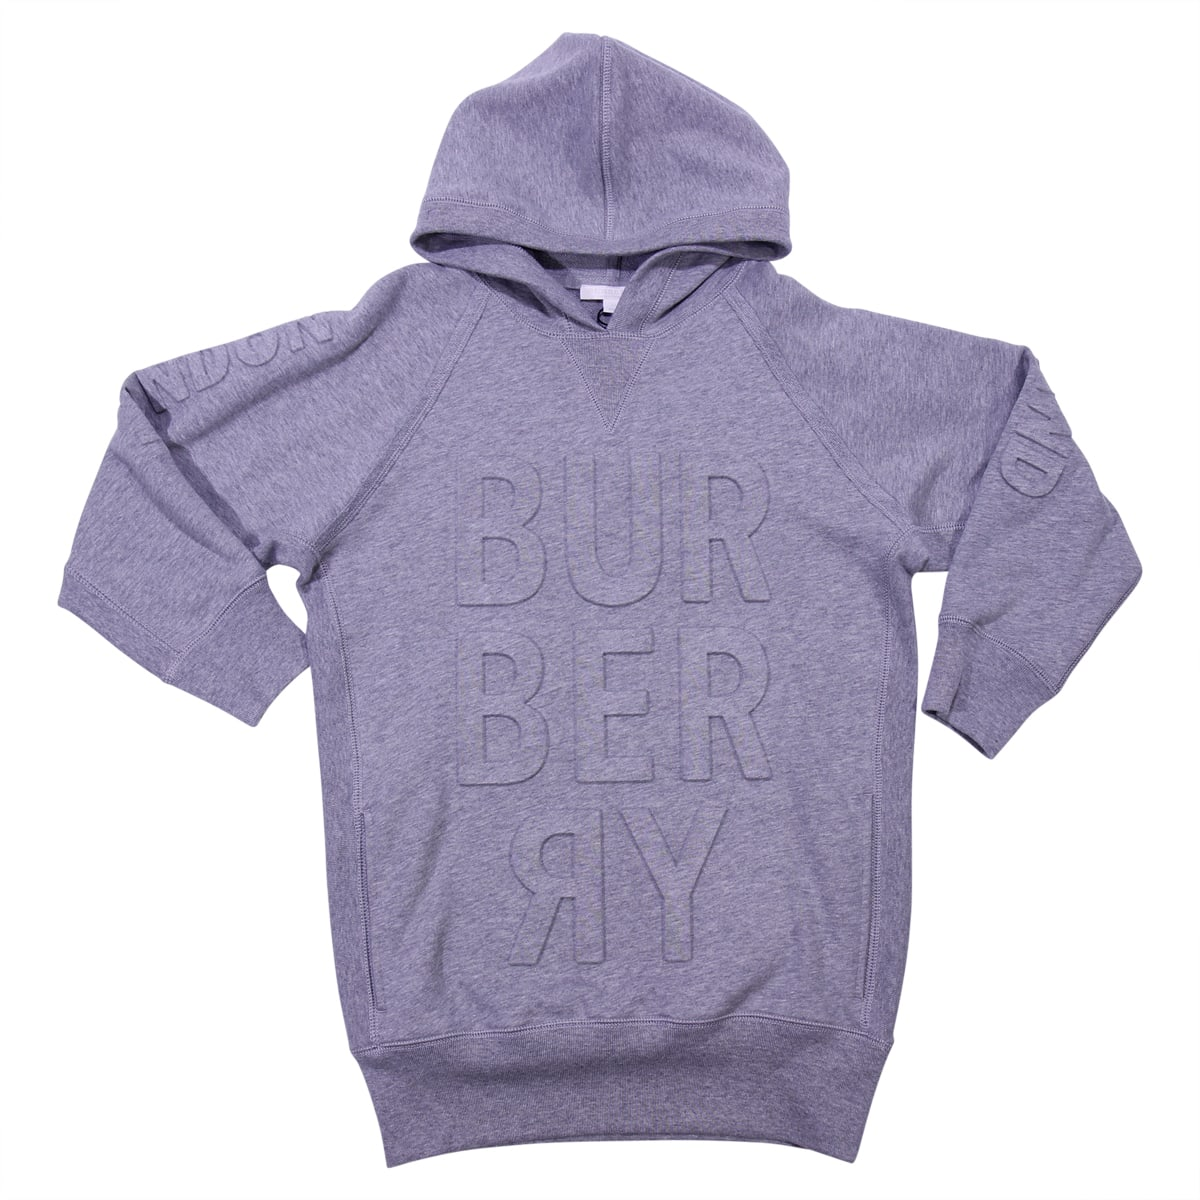 Burberry Marled Grey Cotton Hoodie Dress